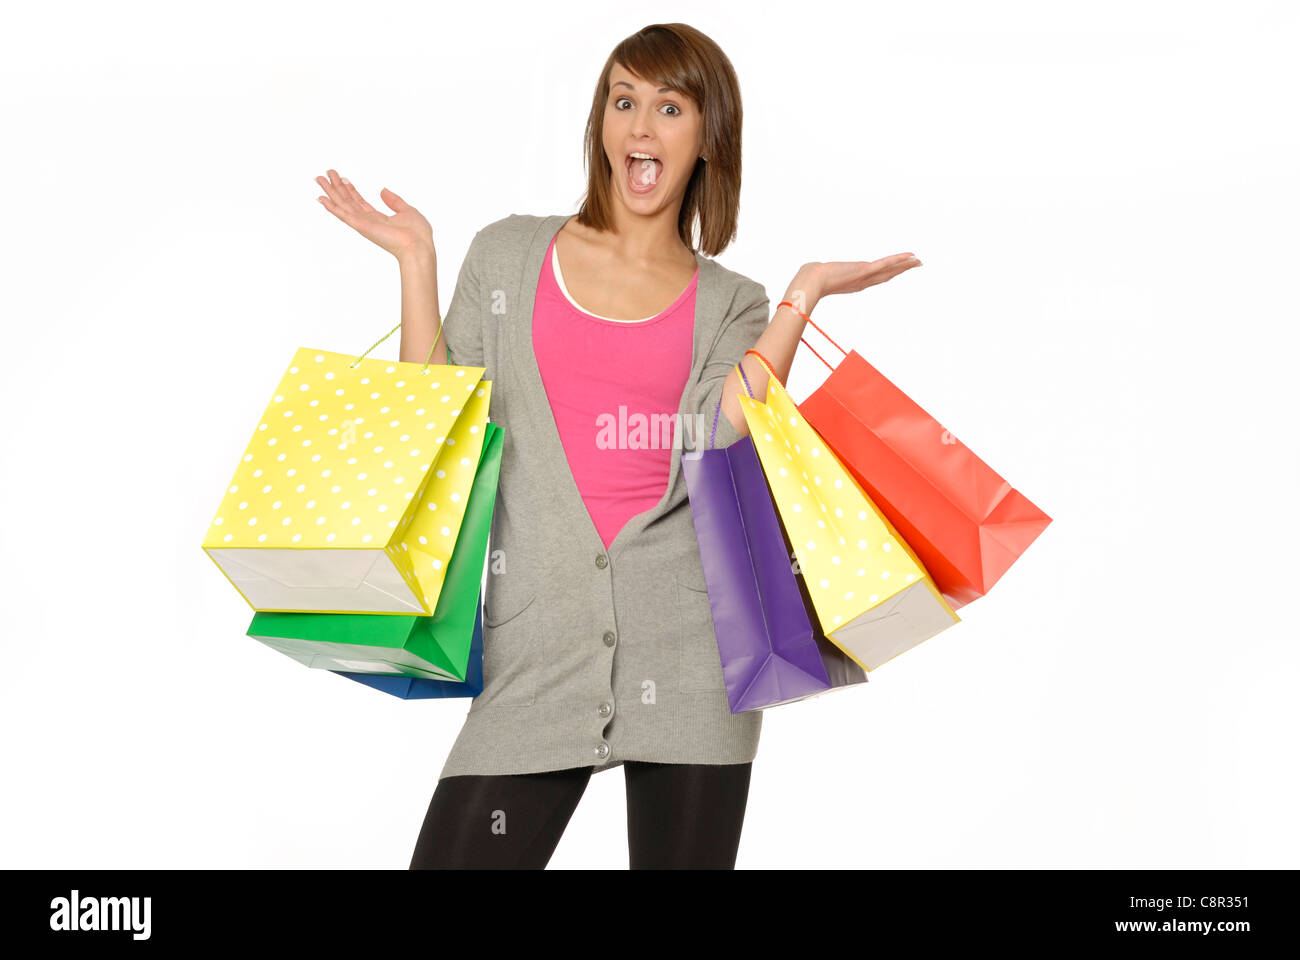 Pretty Young Woman With Excited Expression, Holding Many Bright Colored Shopping Bags - Stock Image